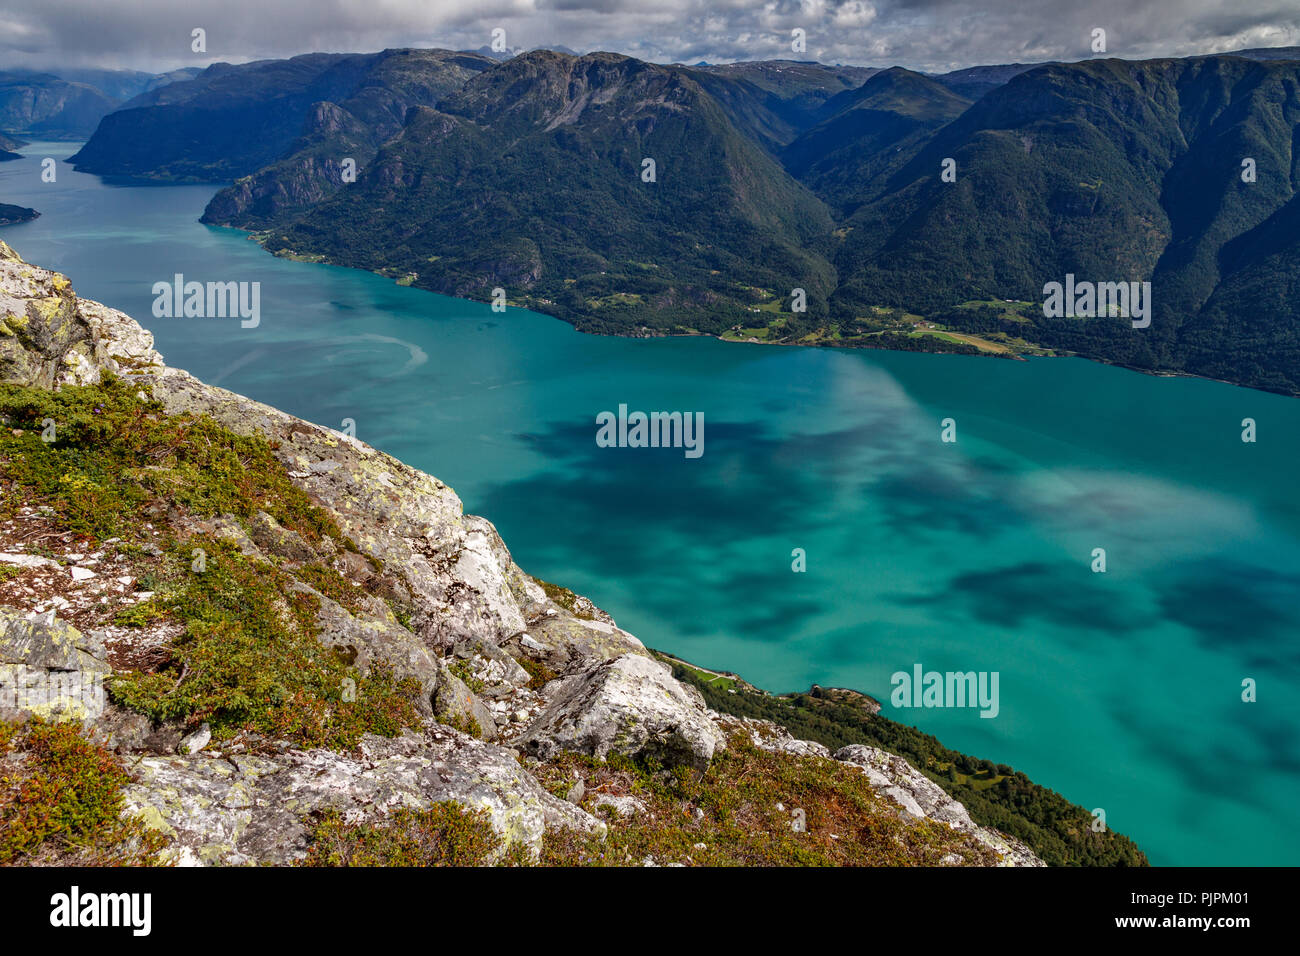 Sognefjord top view with deep green water - Stock Image